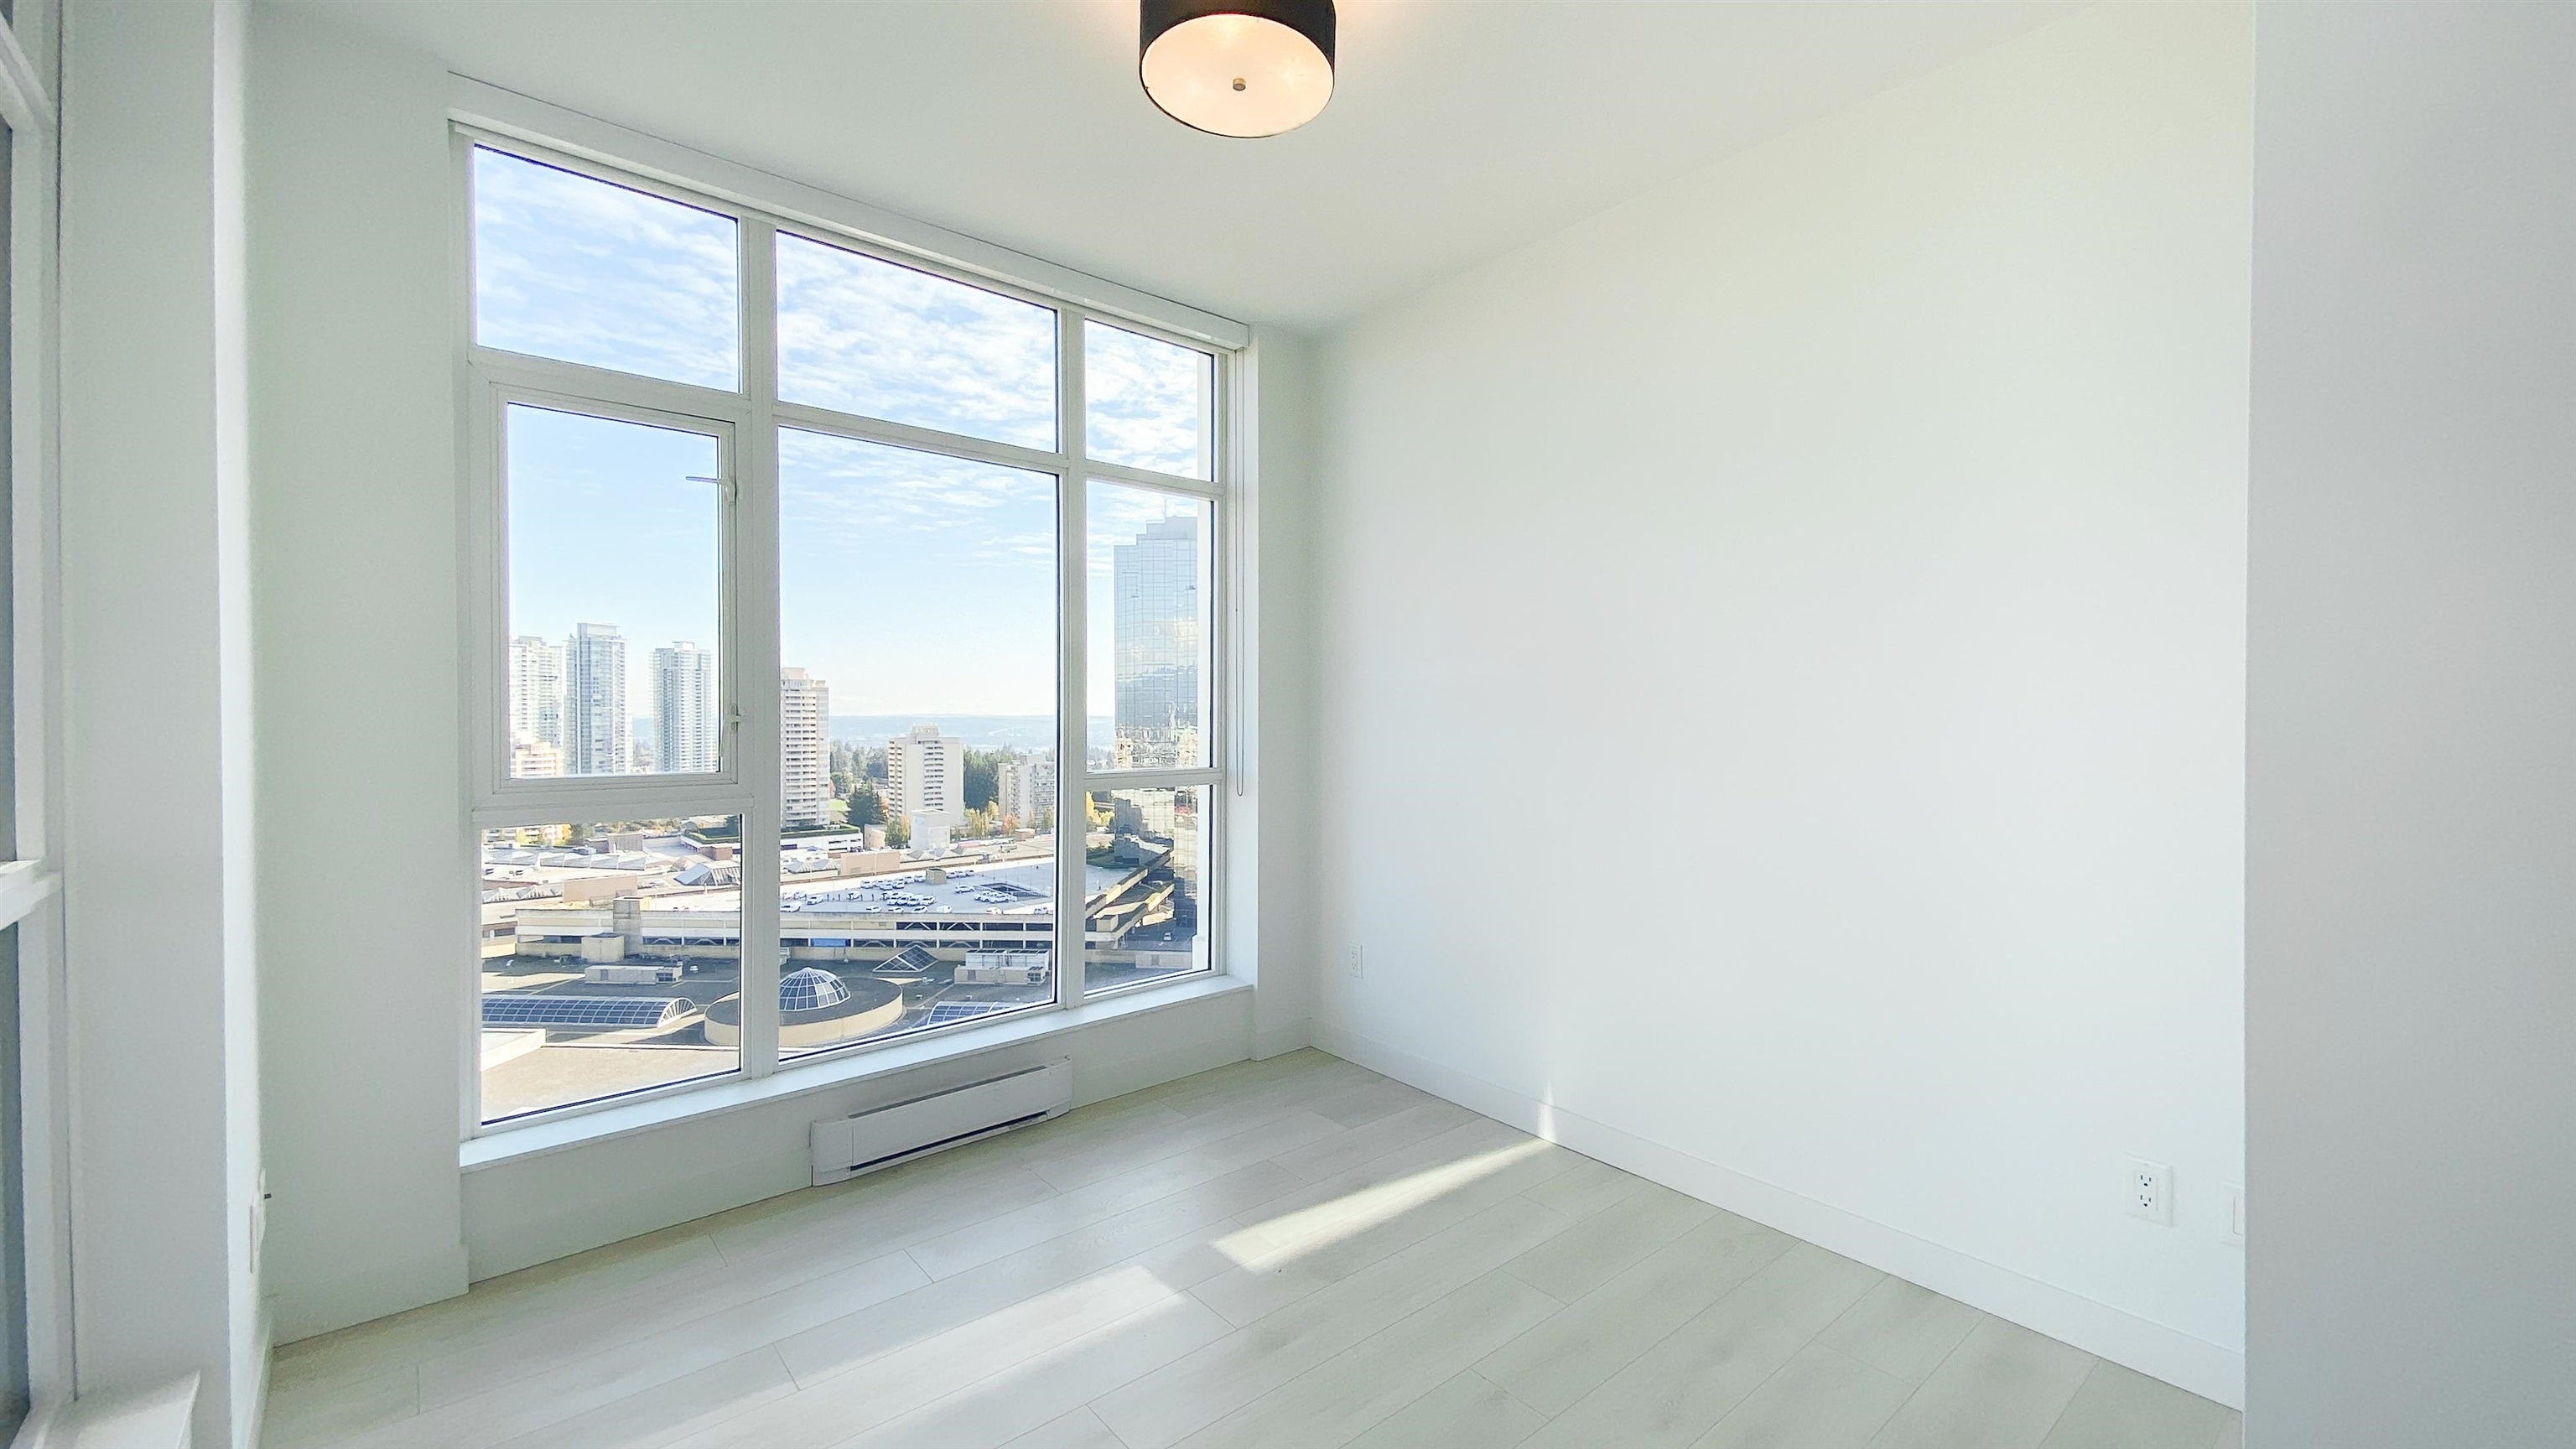 2510 4670 ASSEMBLY WAY - Metrotown Apartment/Condo for sale, 2 Bedrooms (R2625732) - #23